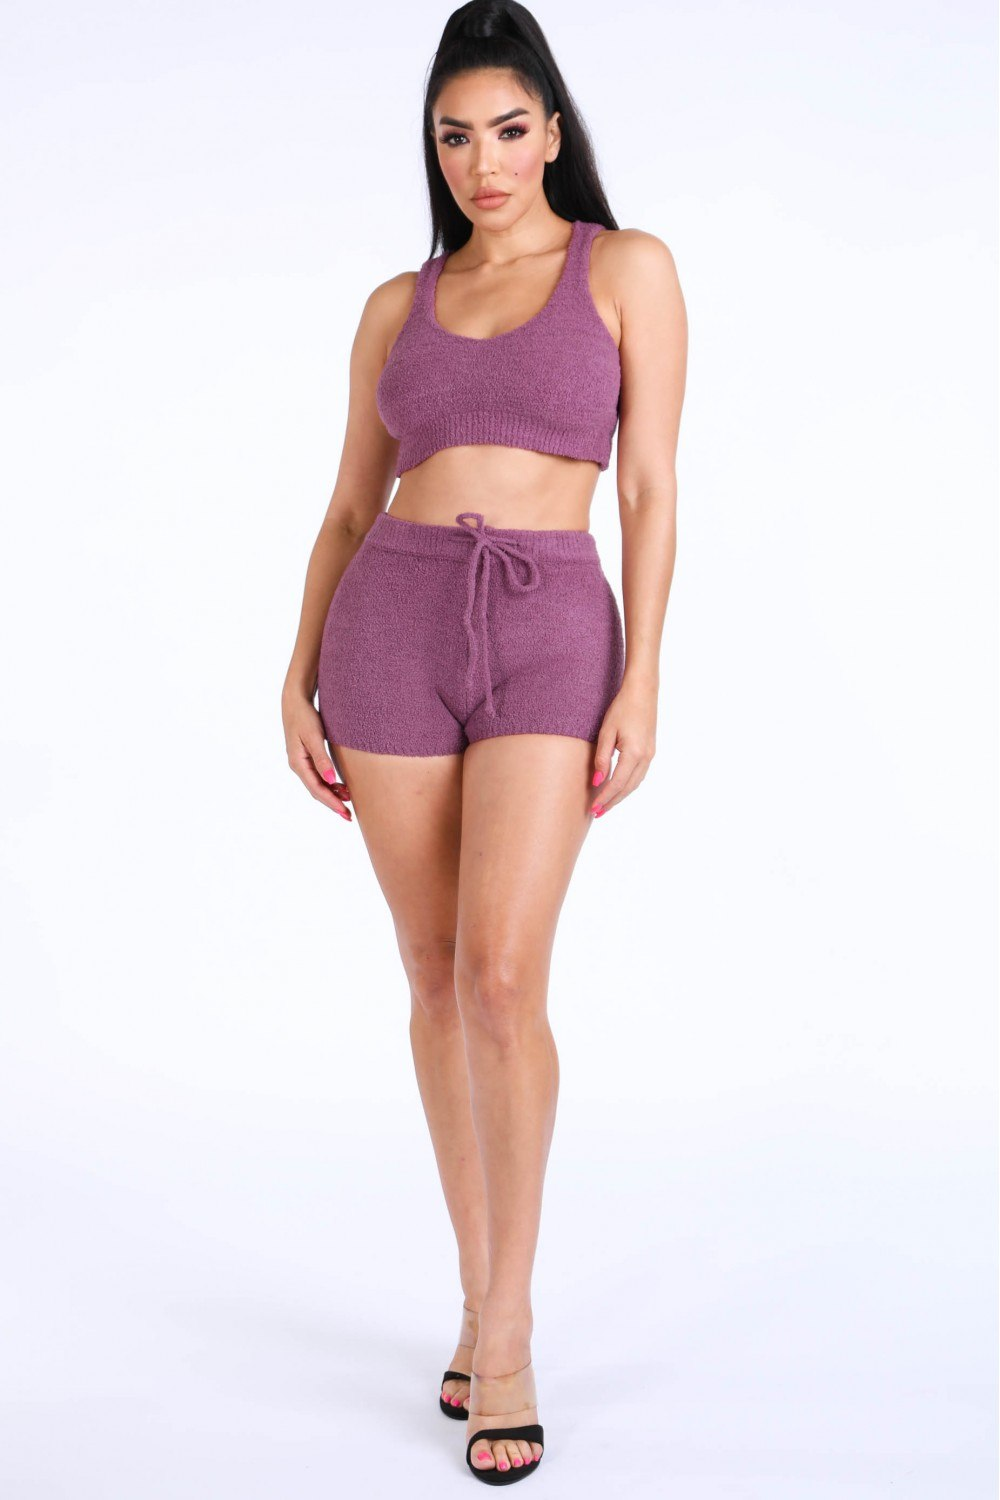 Textured Knitted Tank Top Short Set [chicberri]